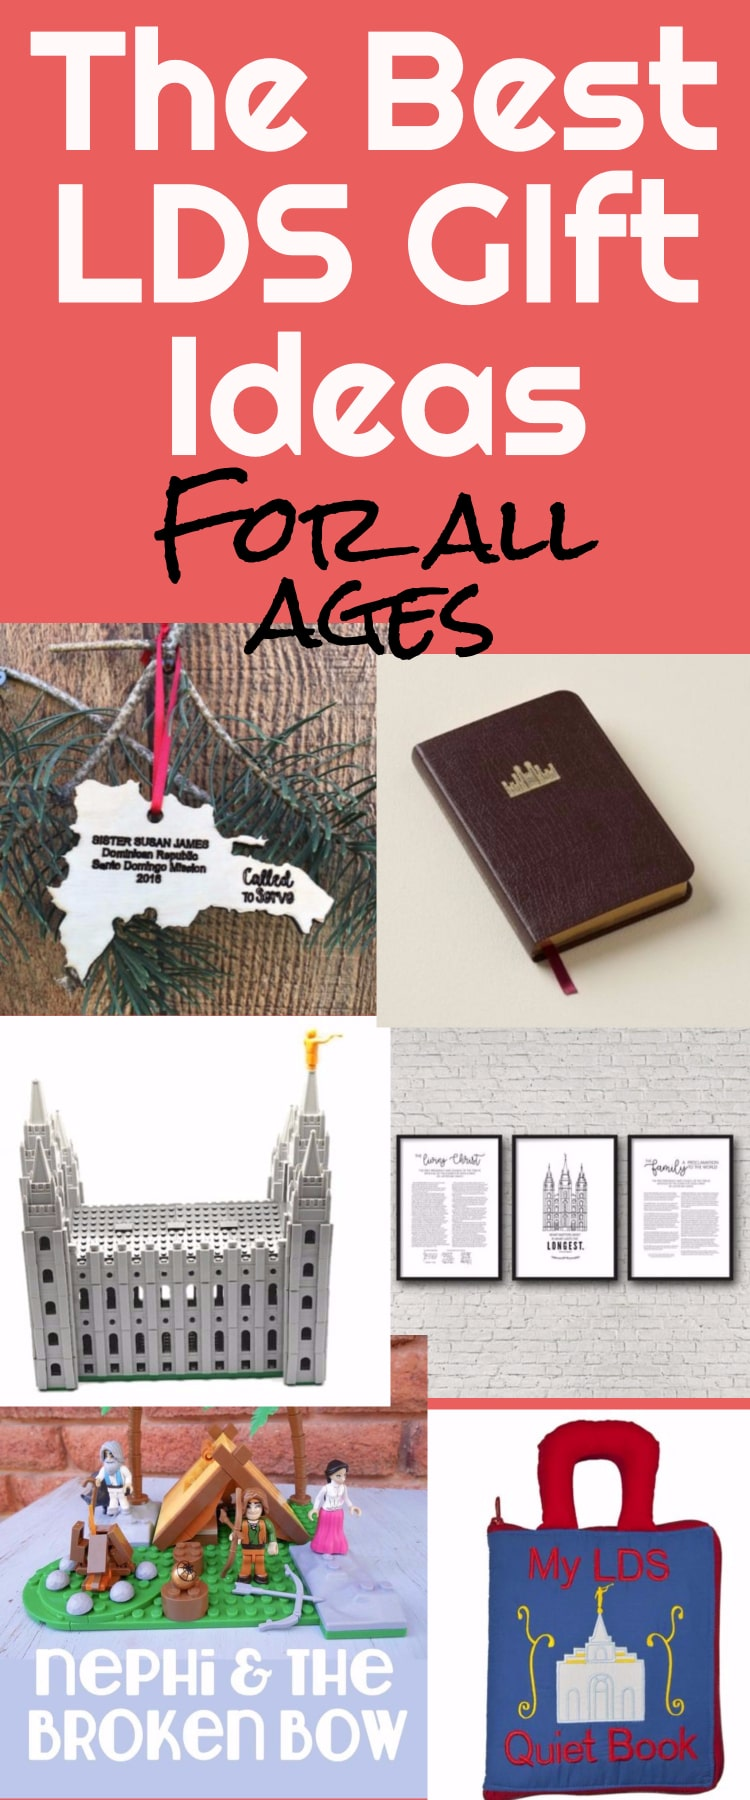 LDS Gifts / Mormon Gifts / Christmas Gifts / LDS / Mormon #LDS #Mormon #GiftIdeas via @clarkscondensed